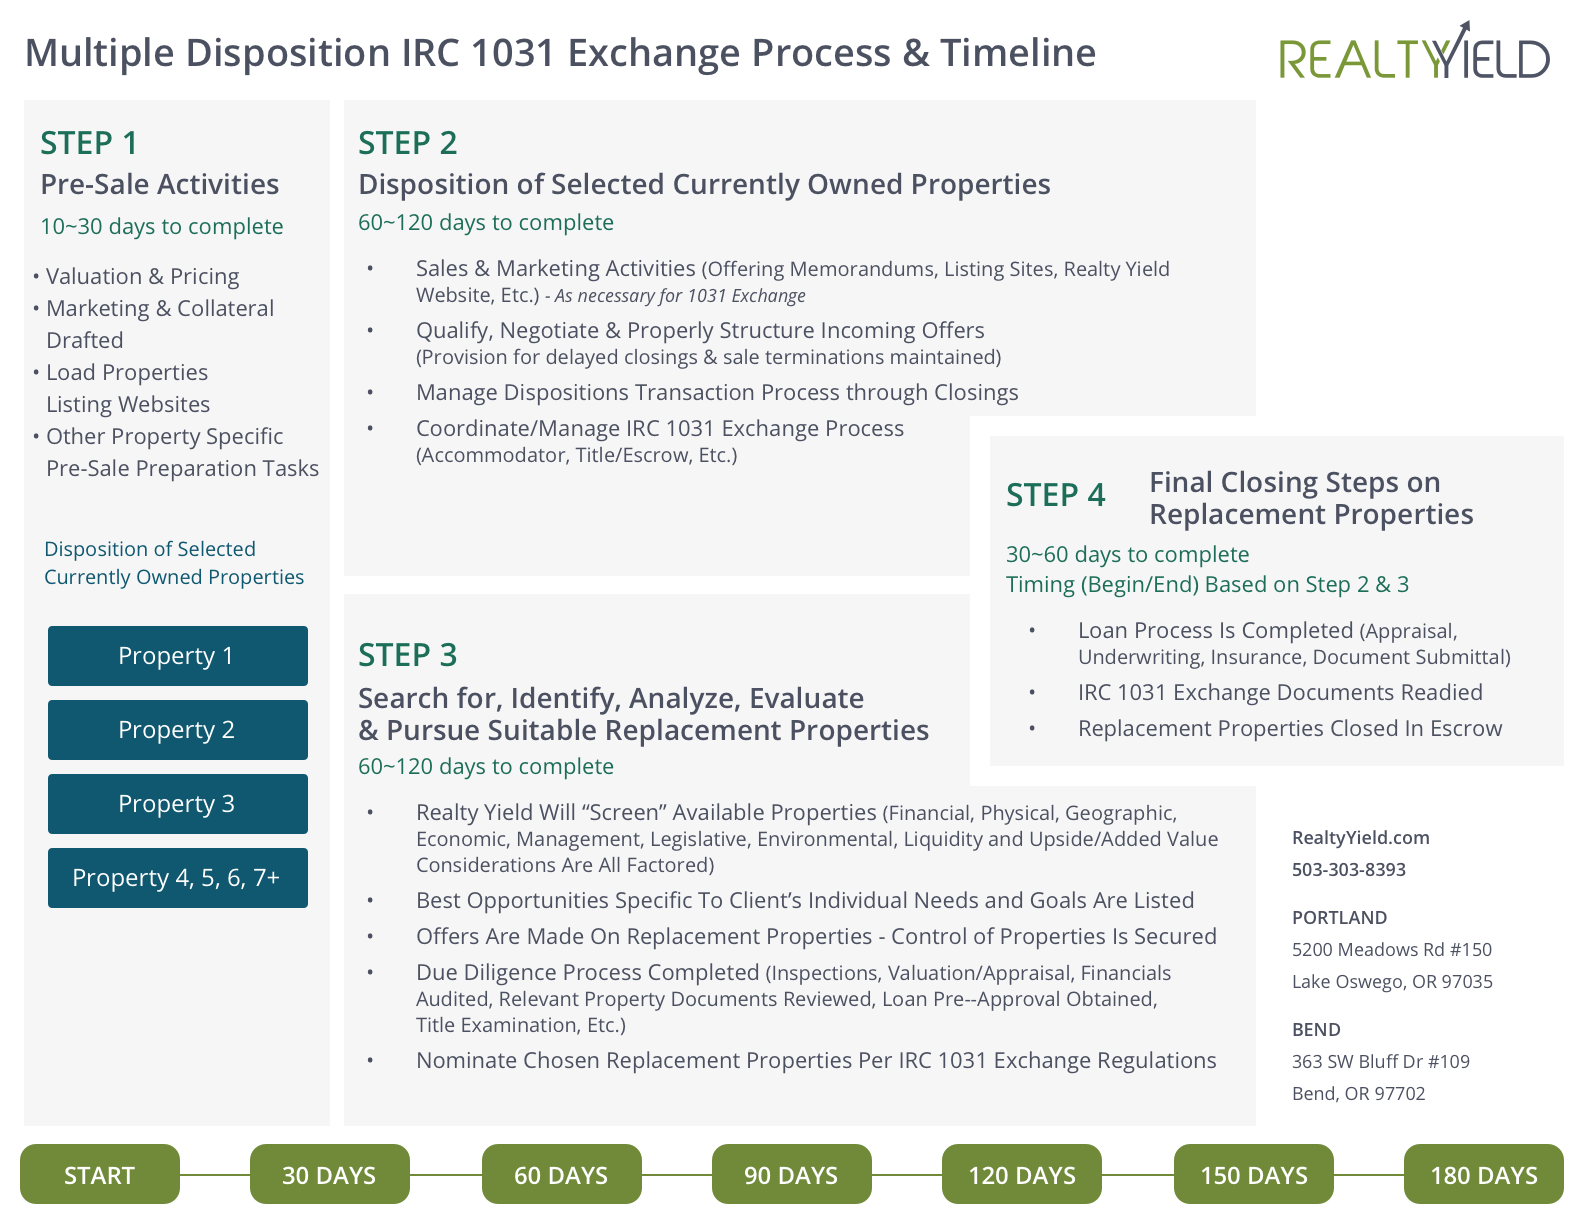 1031 Exchange Process and Timeline